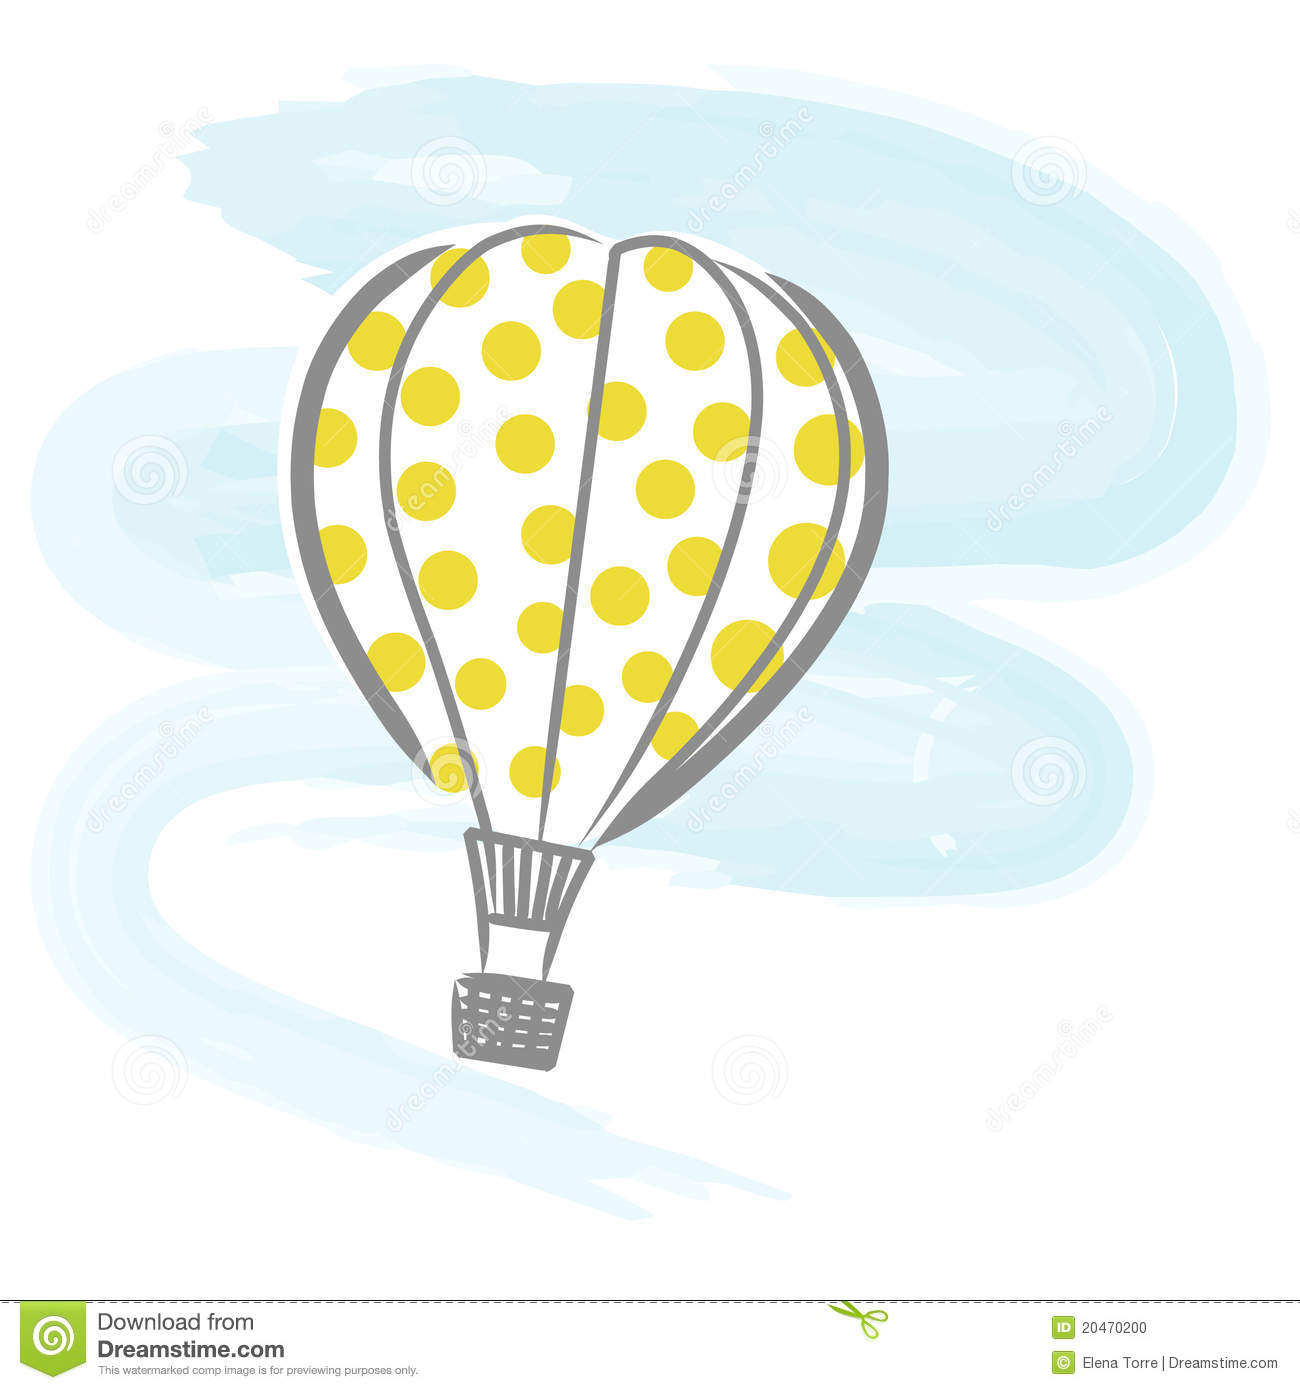 Funny balloon faces - Hot Air Balloon Vector Stock Photo